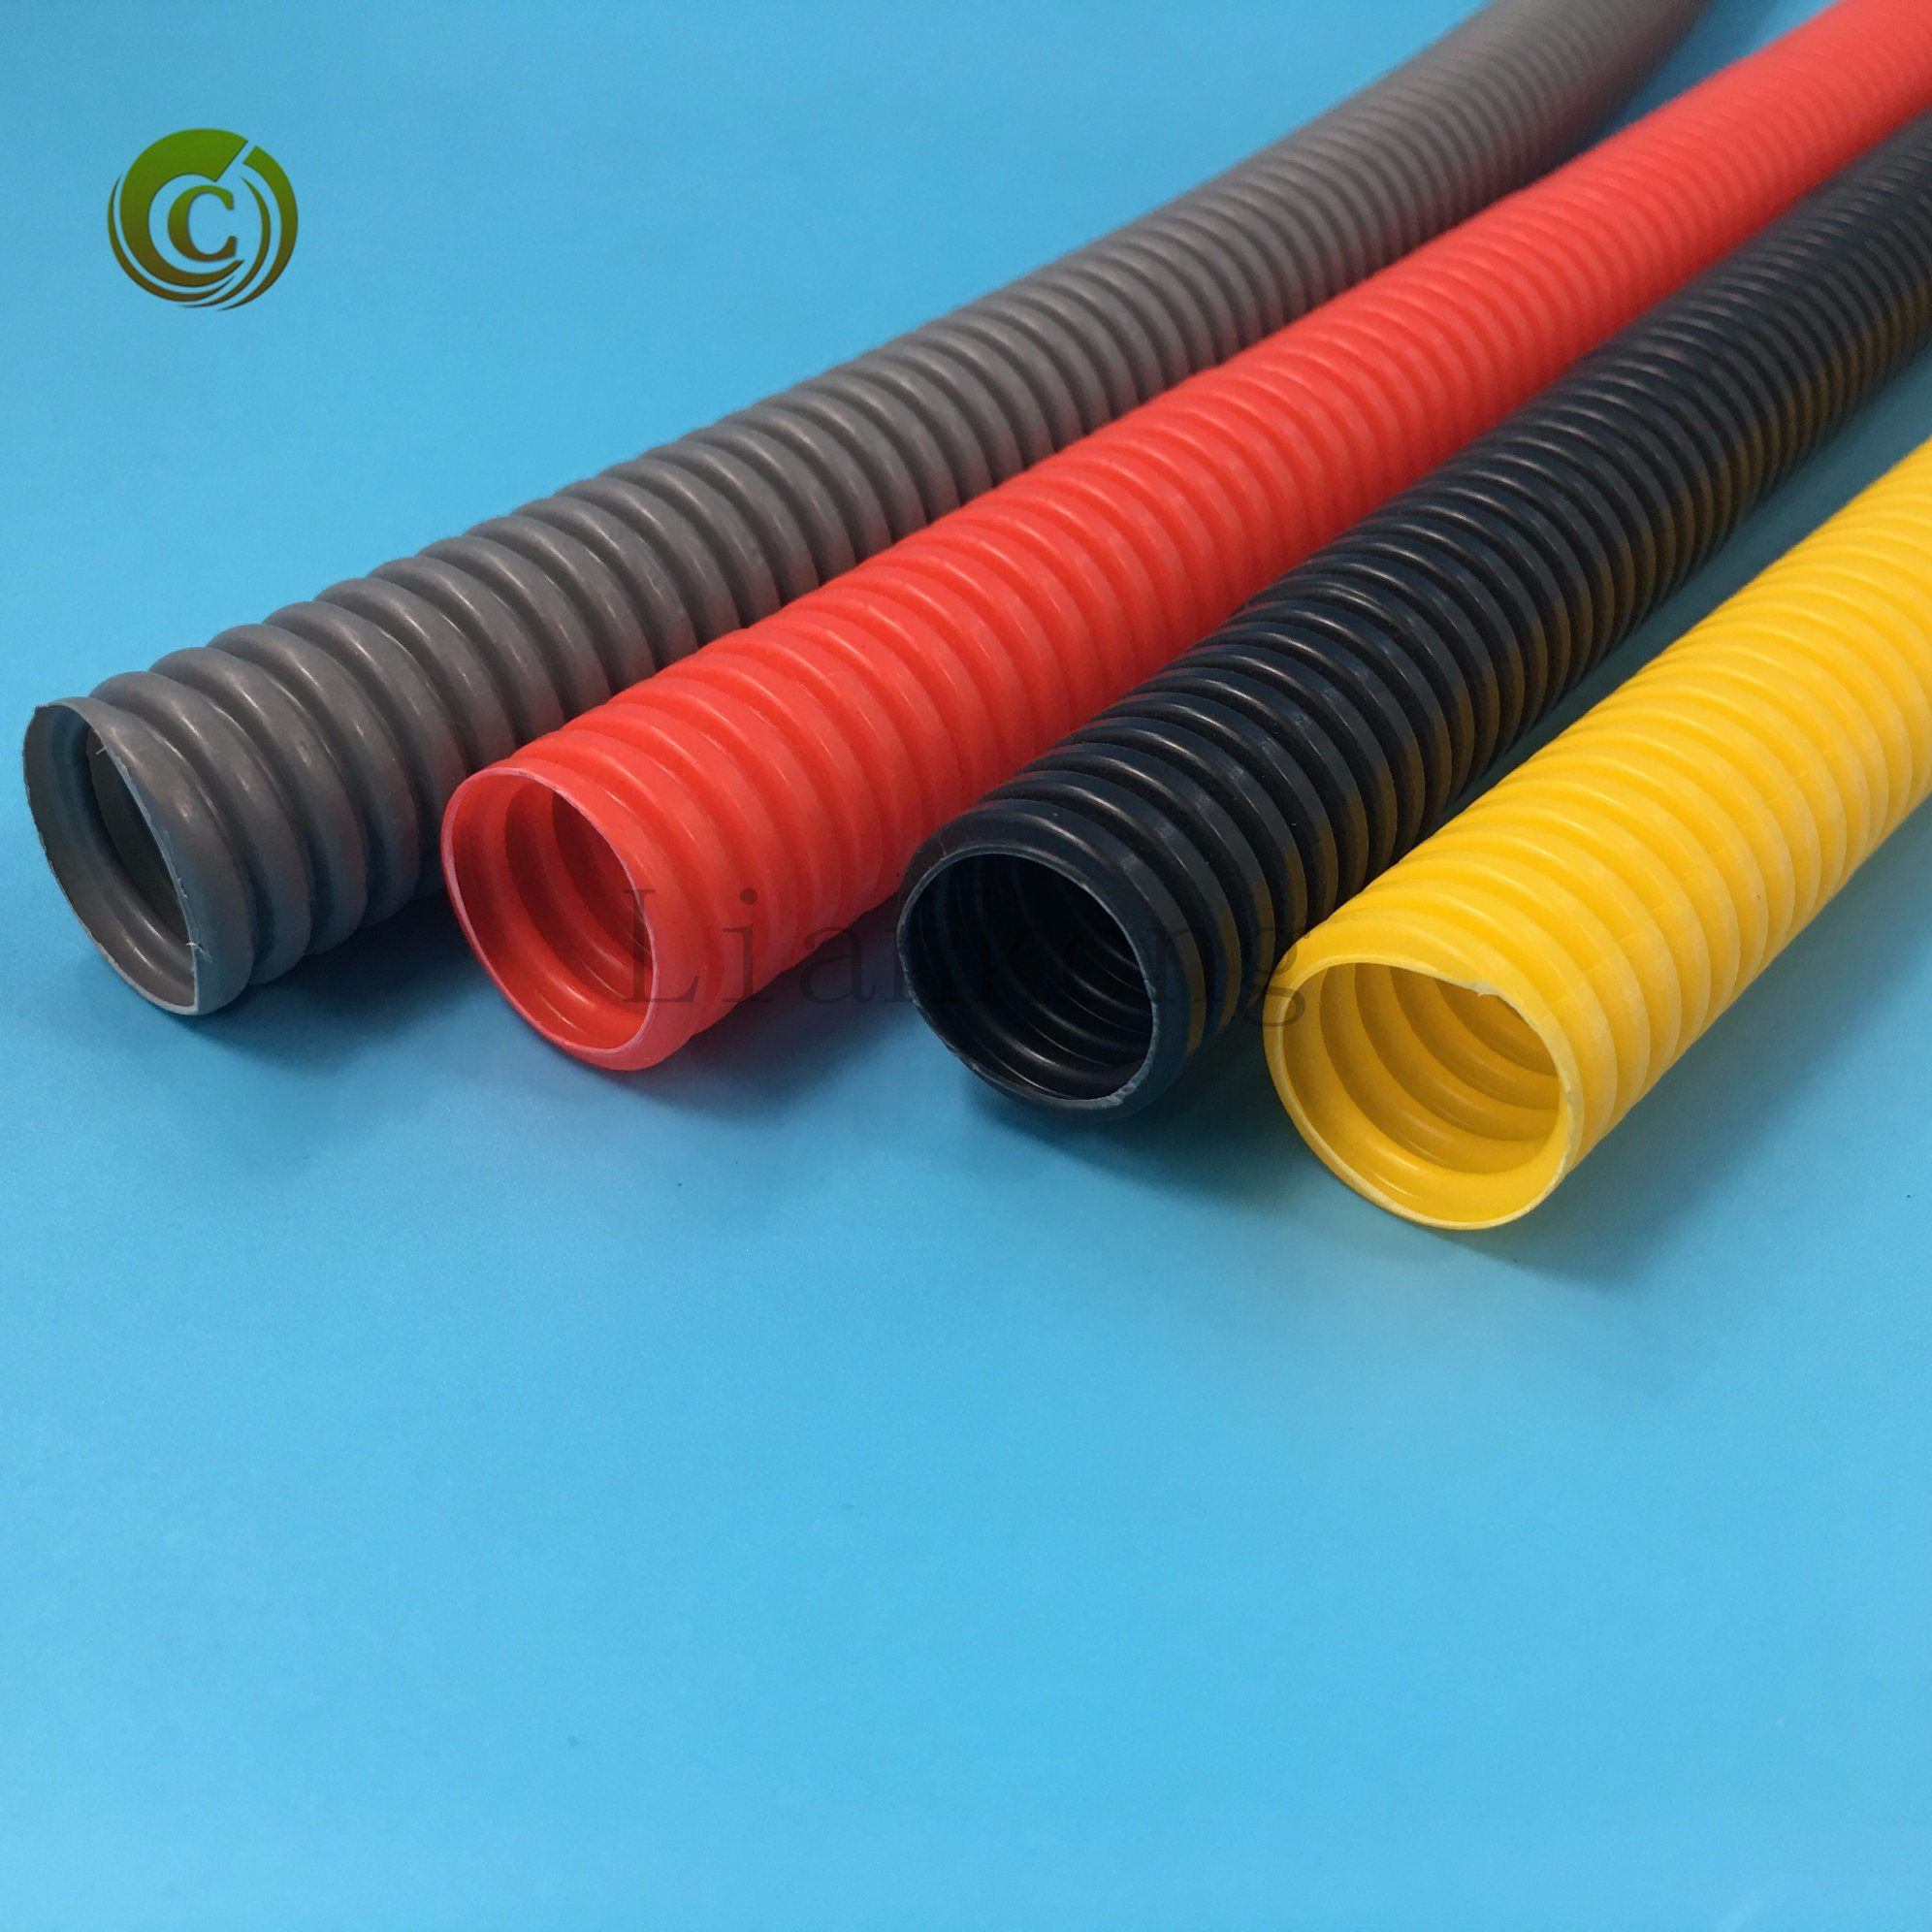 China 2018 Flexible Conduit Corrugated Pipe PVC Electrical Cable ...